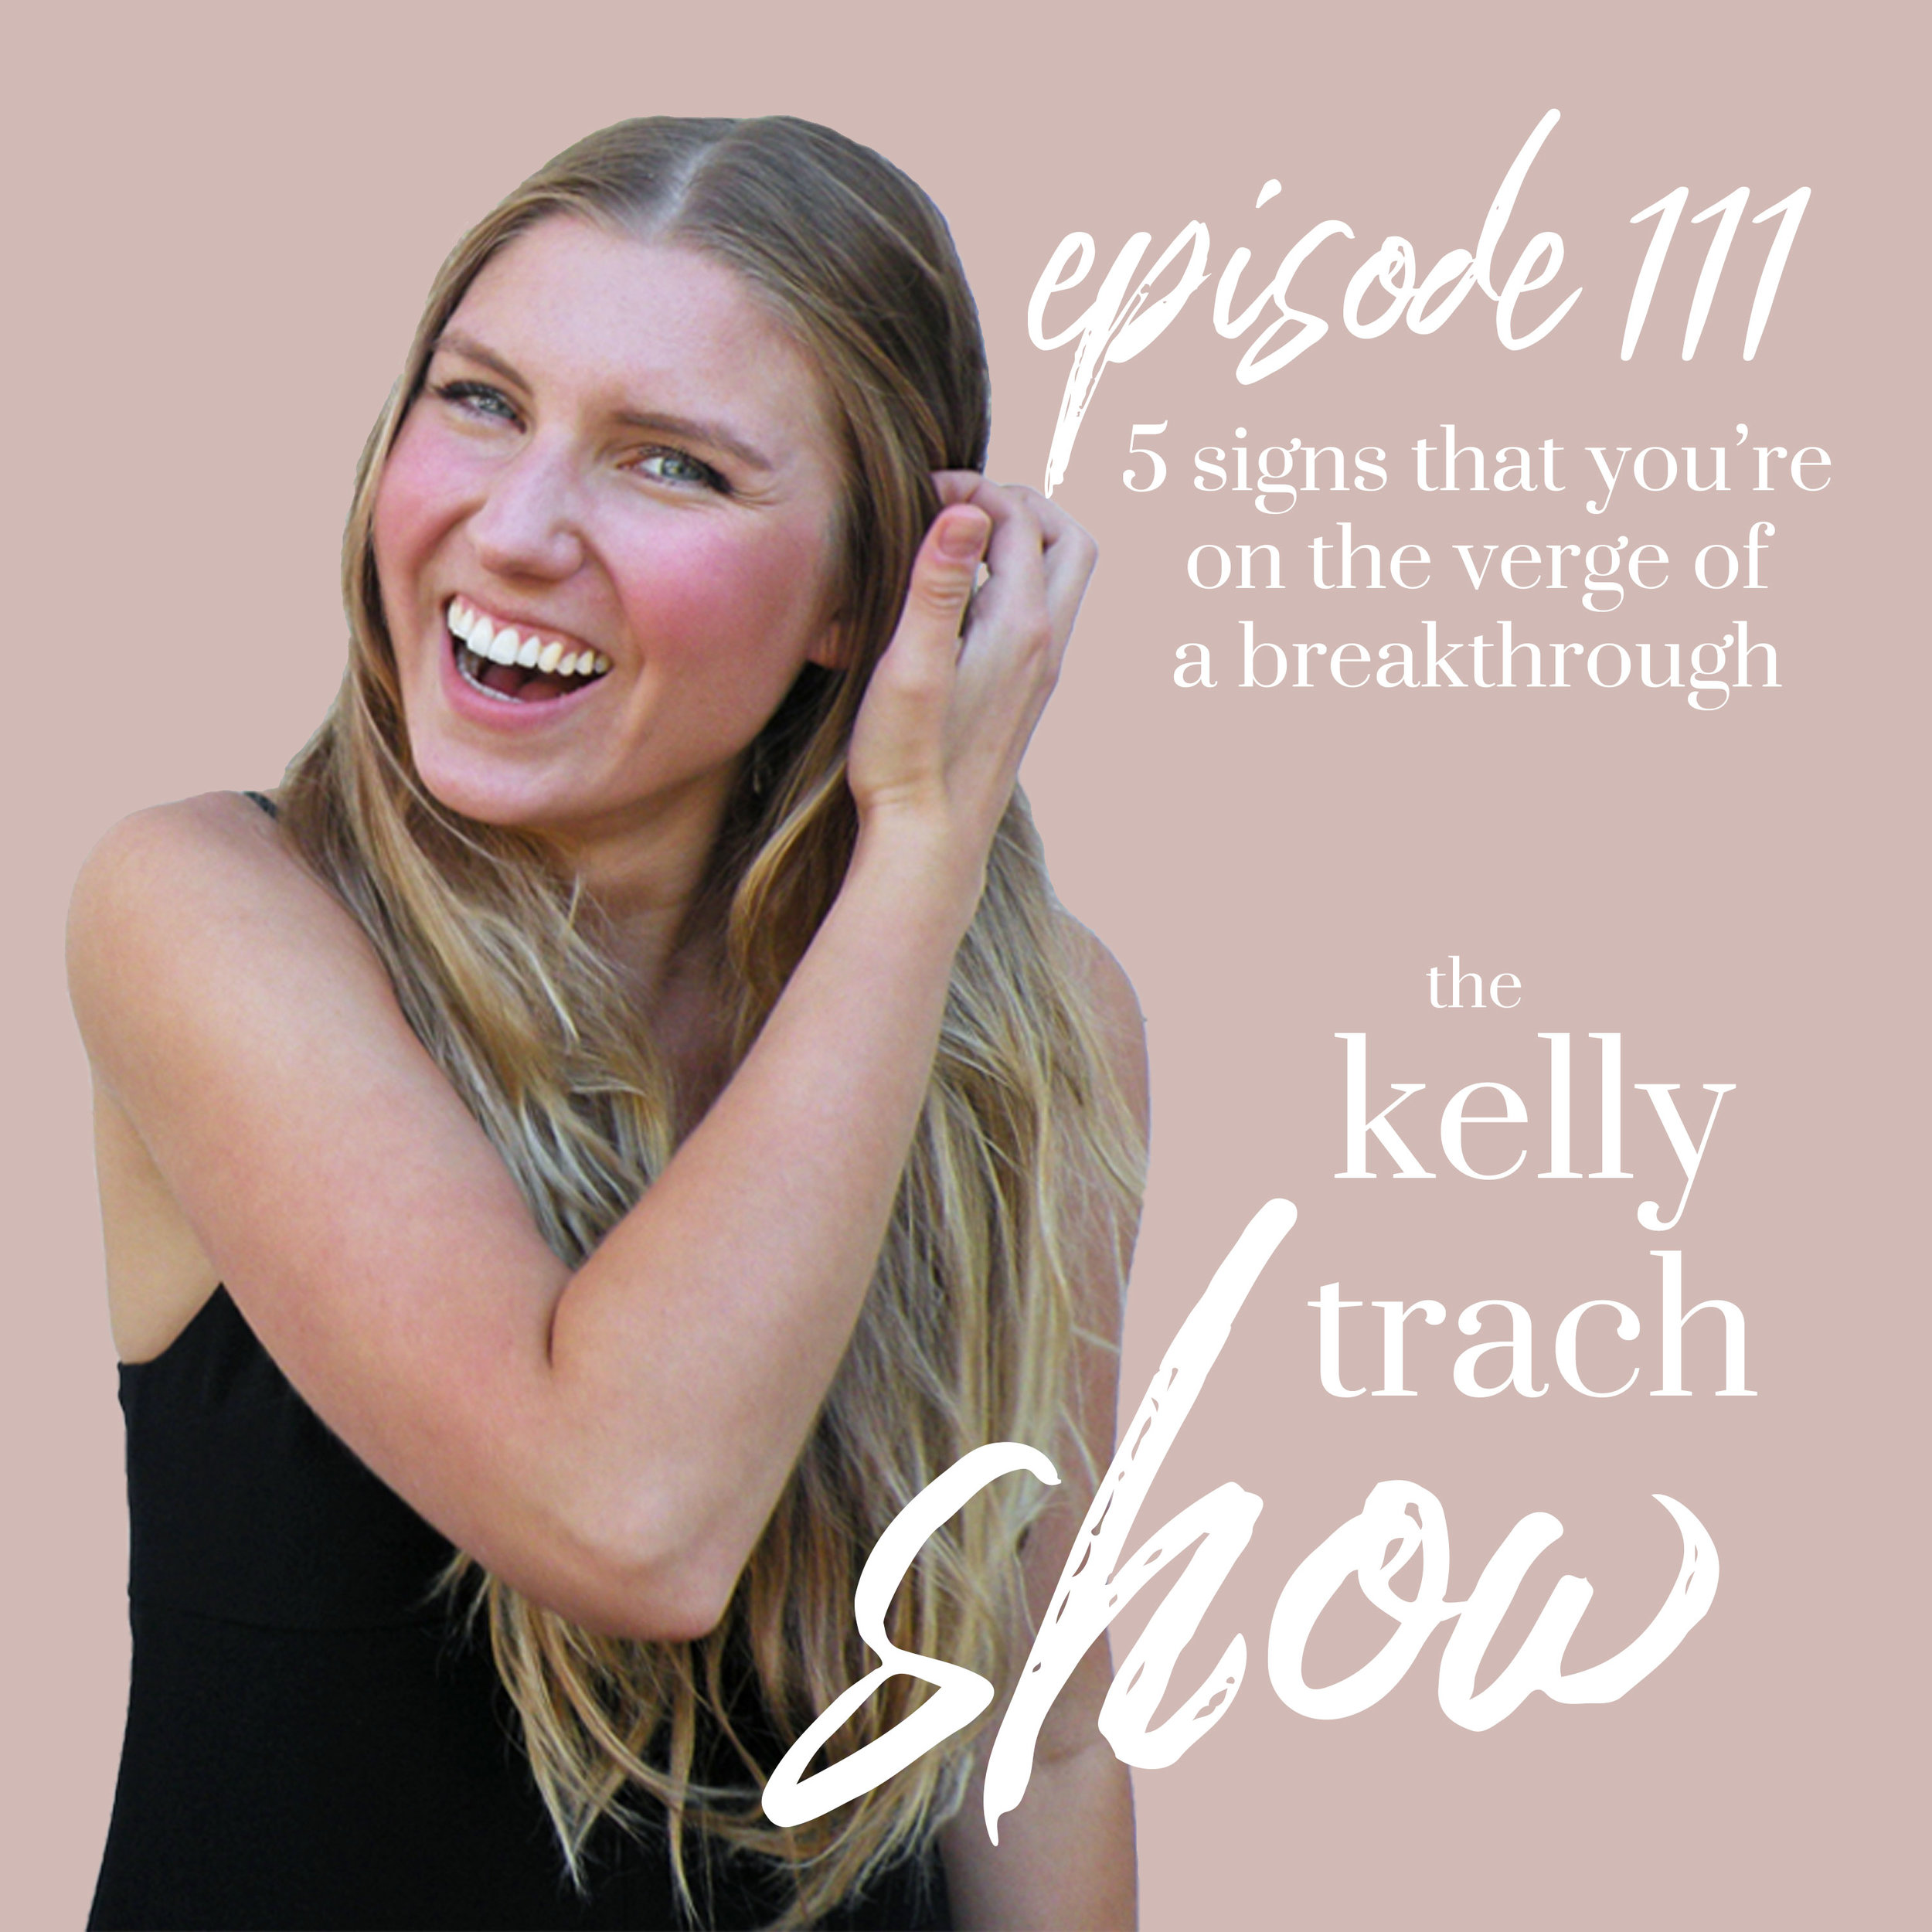 111 5 Signs that You're on the Verge of a Big Breakthrough The Kelly Trach Show Podcast.jpg